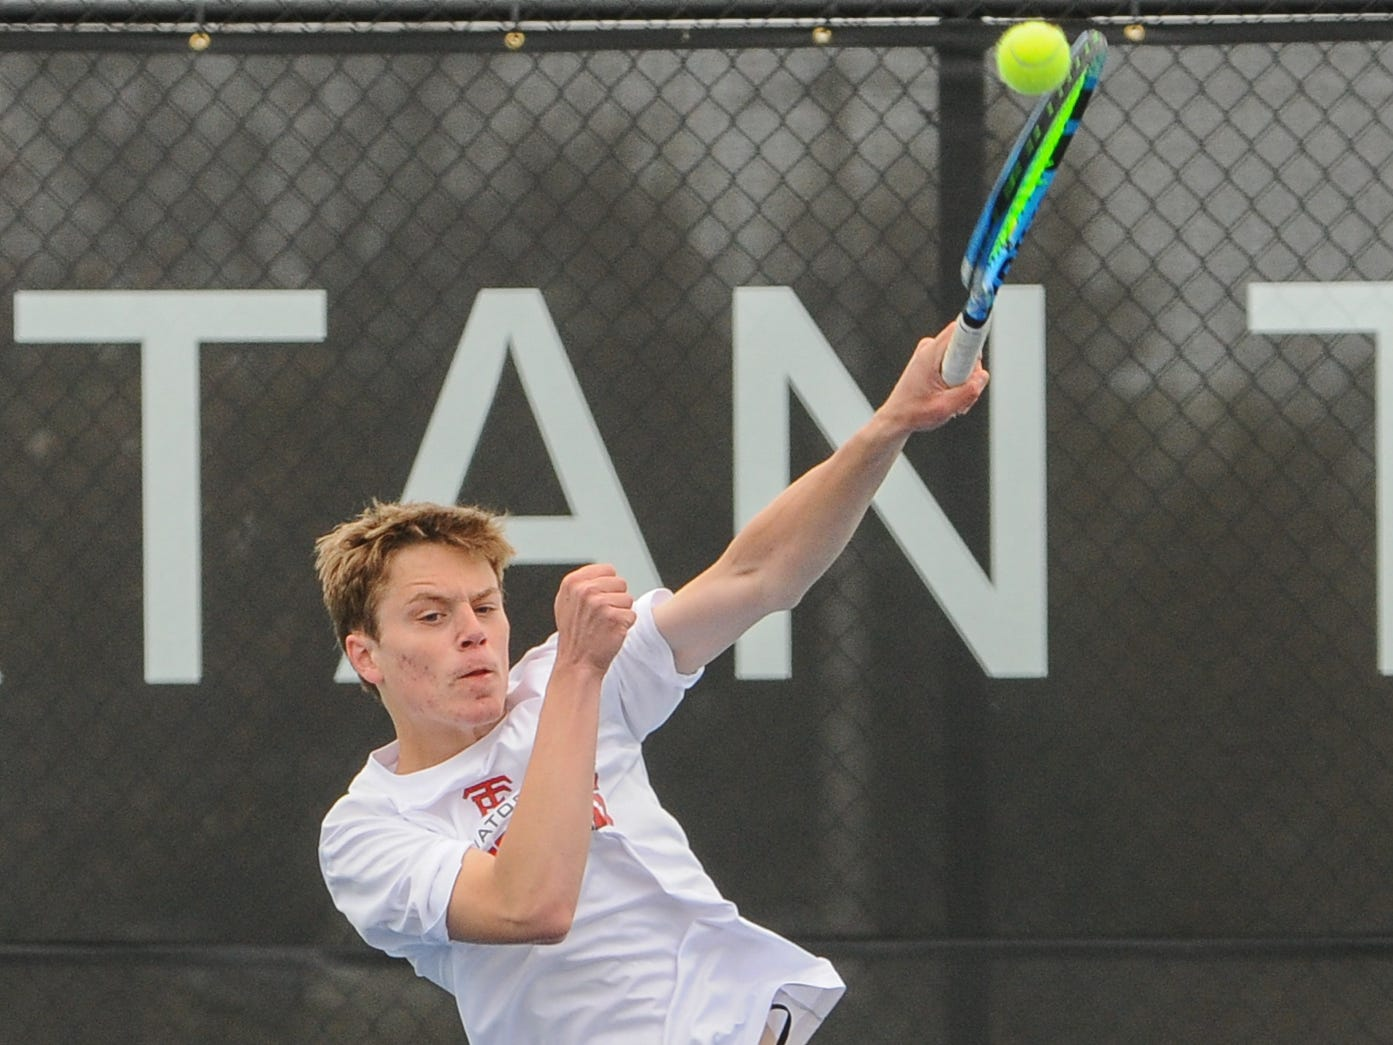 Wauwatosa East sophomore Noah Viste returns a shot from Menomonee Falls senior Alex Budde at the Greater Metro Conference boys tennis meet Saturday, May 11, 2019, at Brookfield East High School. Viste won their No. 1 singles championship match, 6-2, 4-6, 6-4.